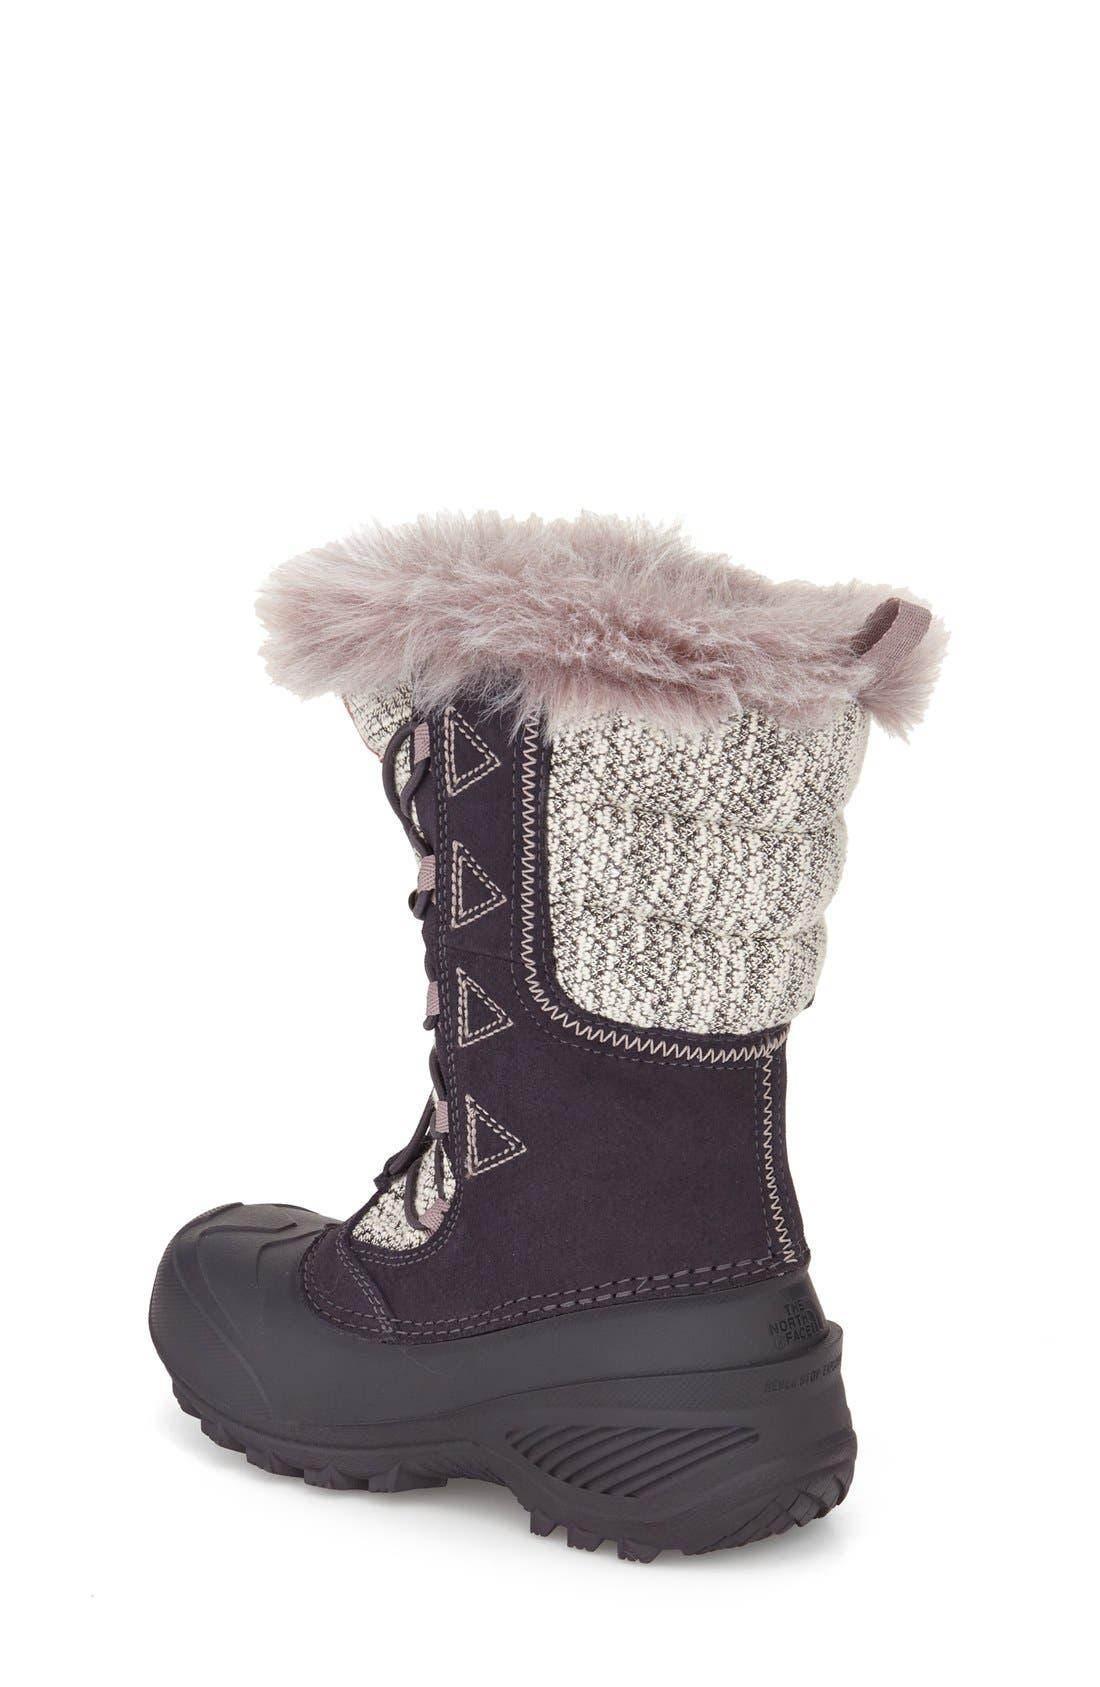 Alternate Image 2  - The North Face Shellista Lace II Waterproof Boot (Toddler, Little Kid & Big Kid)